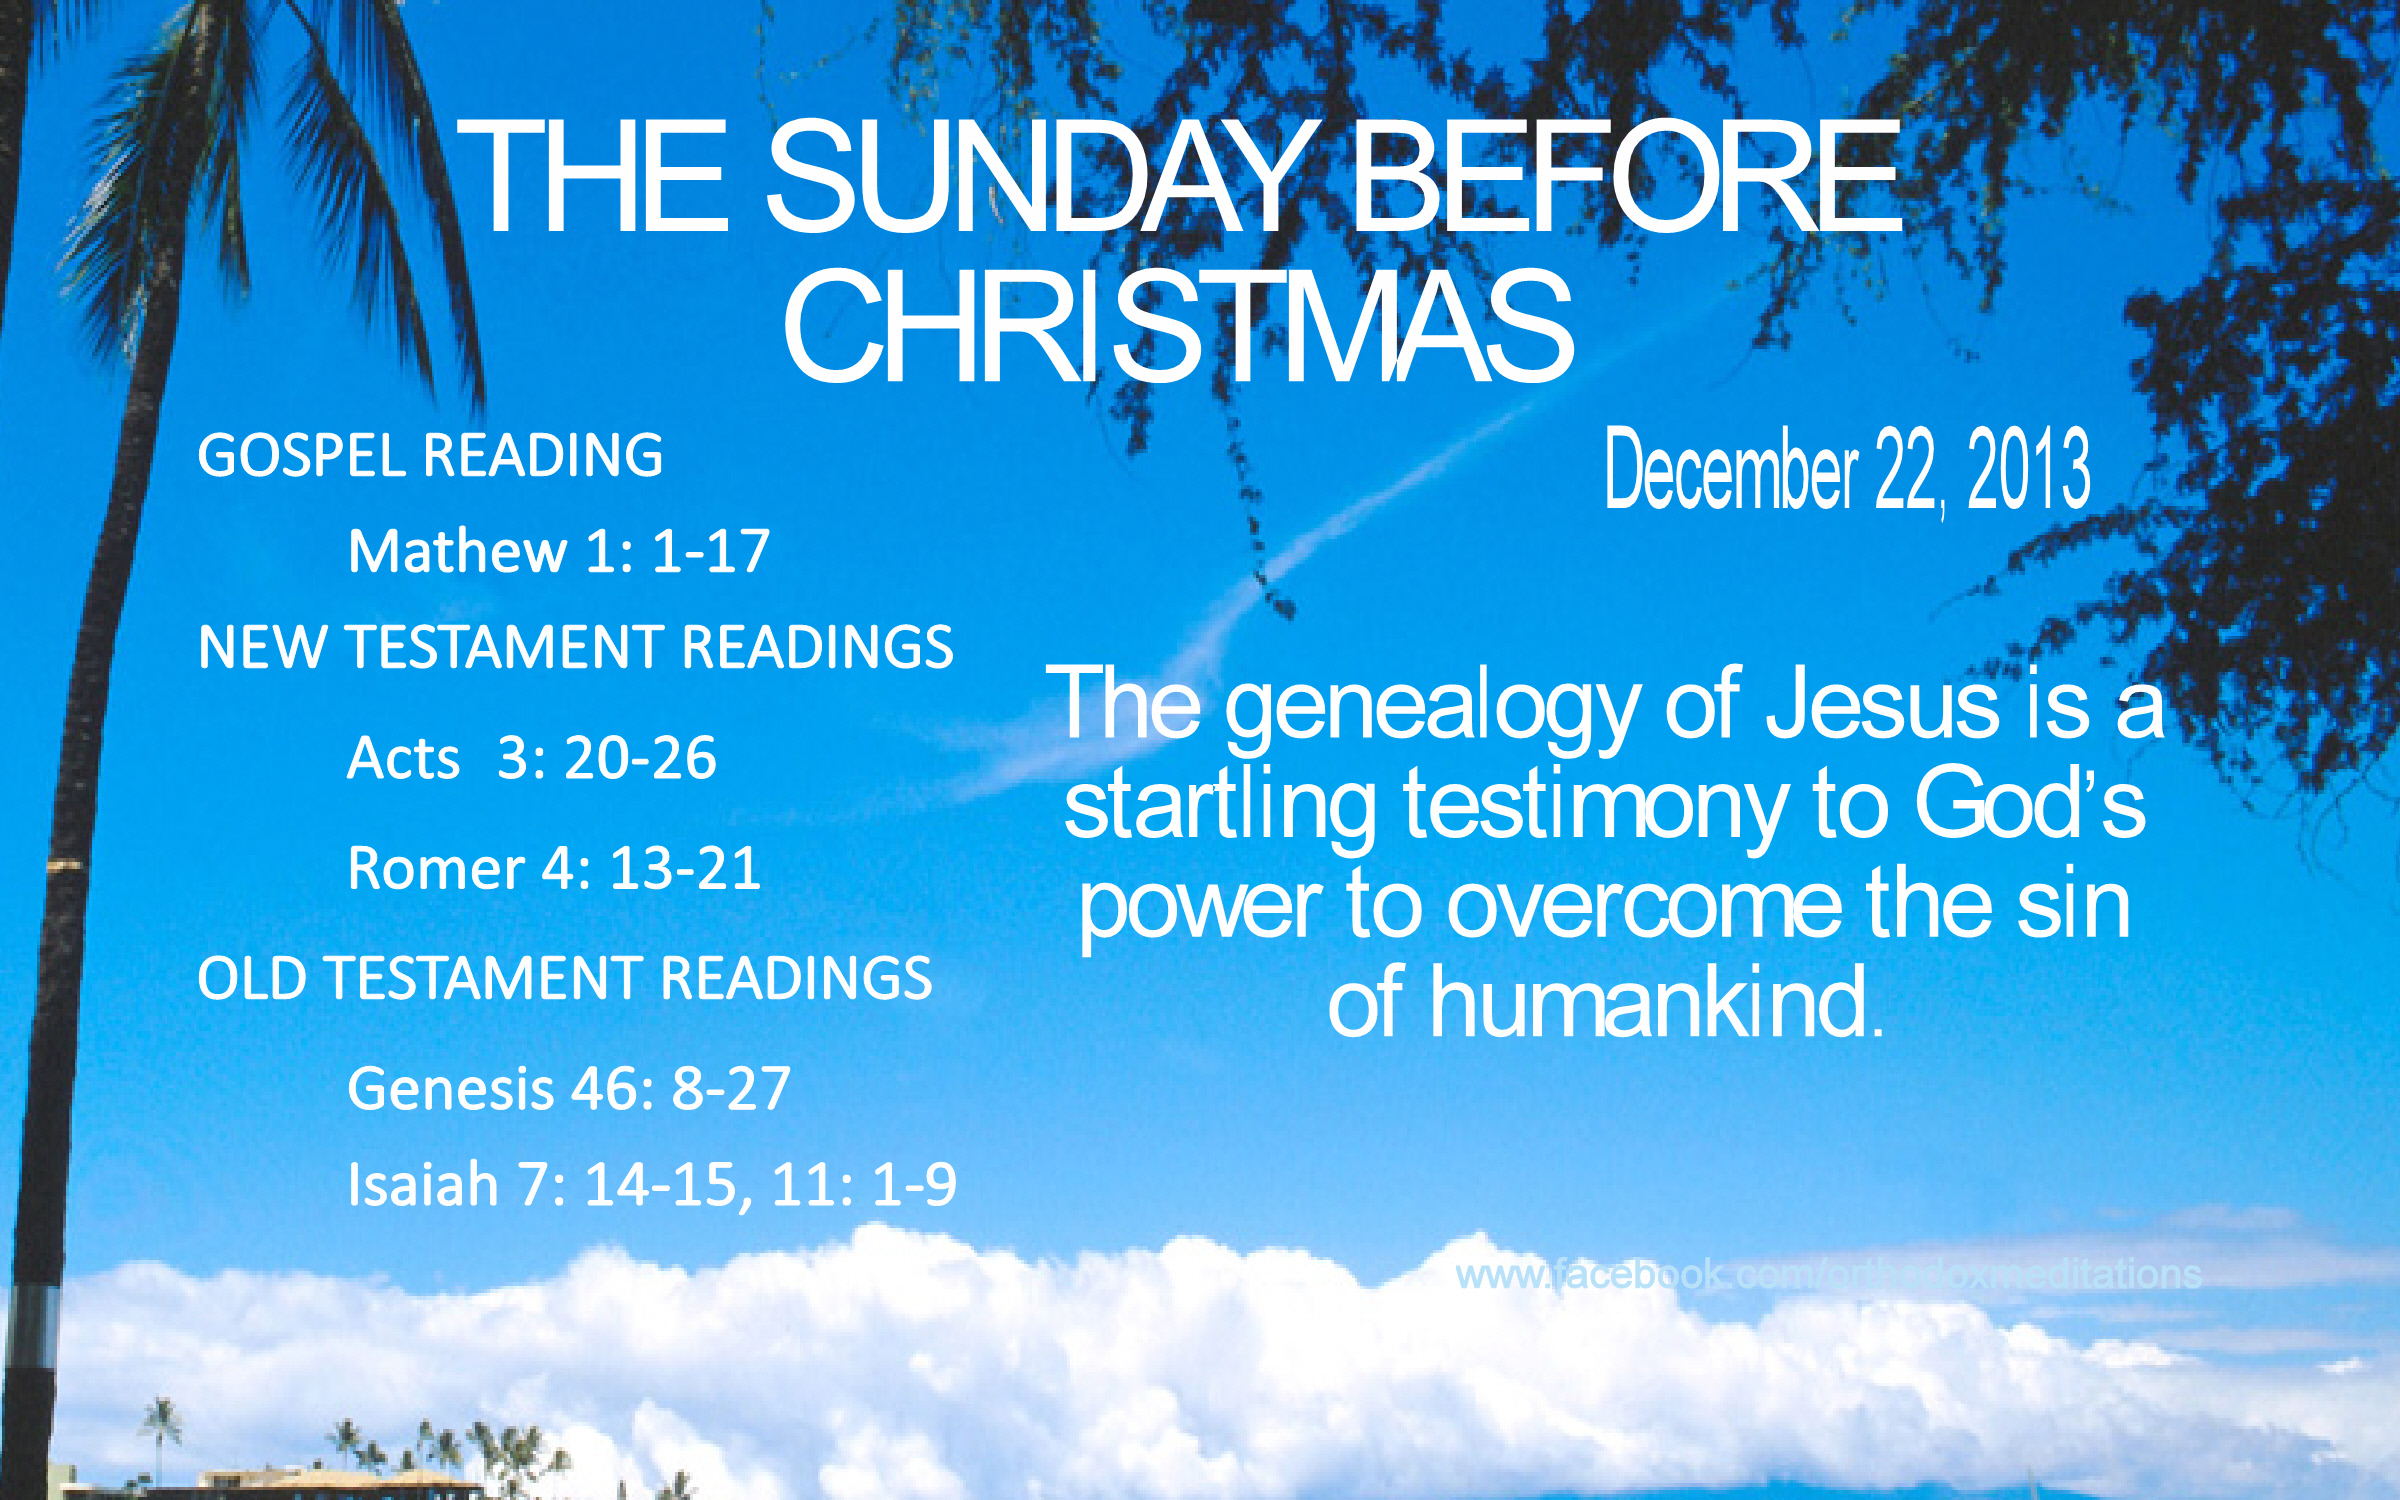 THE SUNDAY BEFORE CHRISTMAS